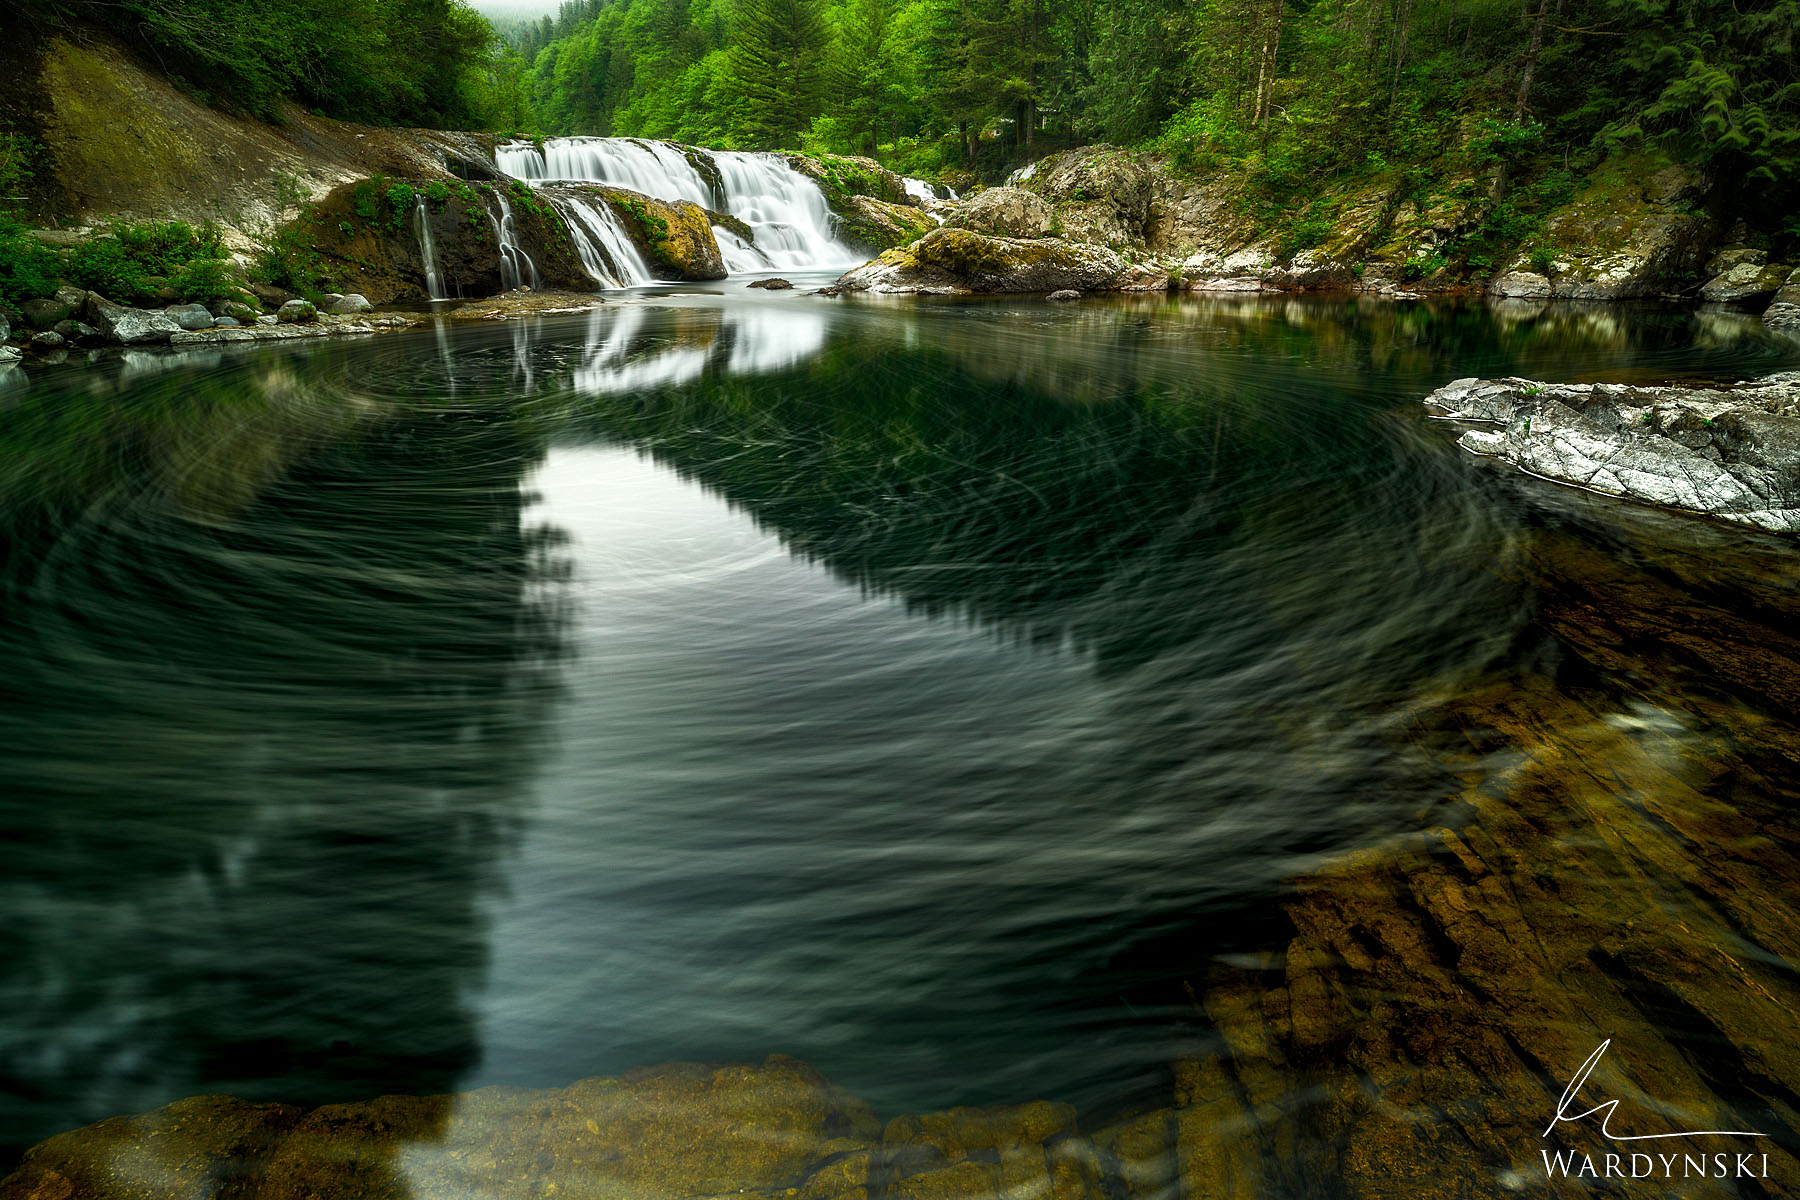 Fine Art Print   Limited Edition of 25  Tiny bubbles swirl in front of Dougan Falls near the Columbia River Gorge in Washington...